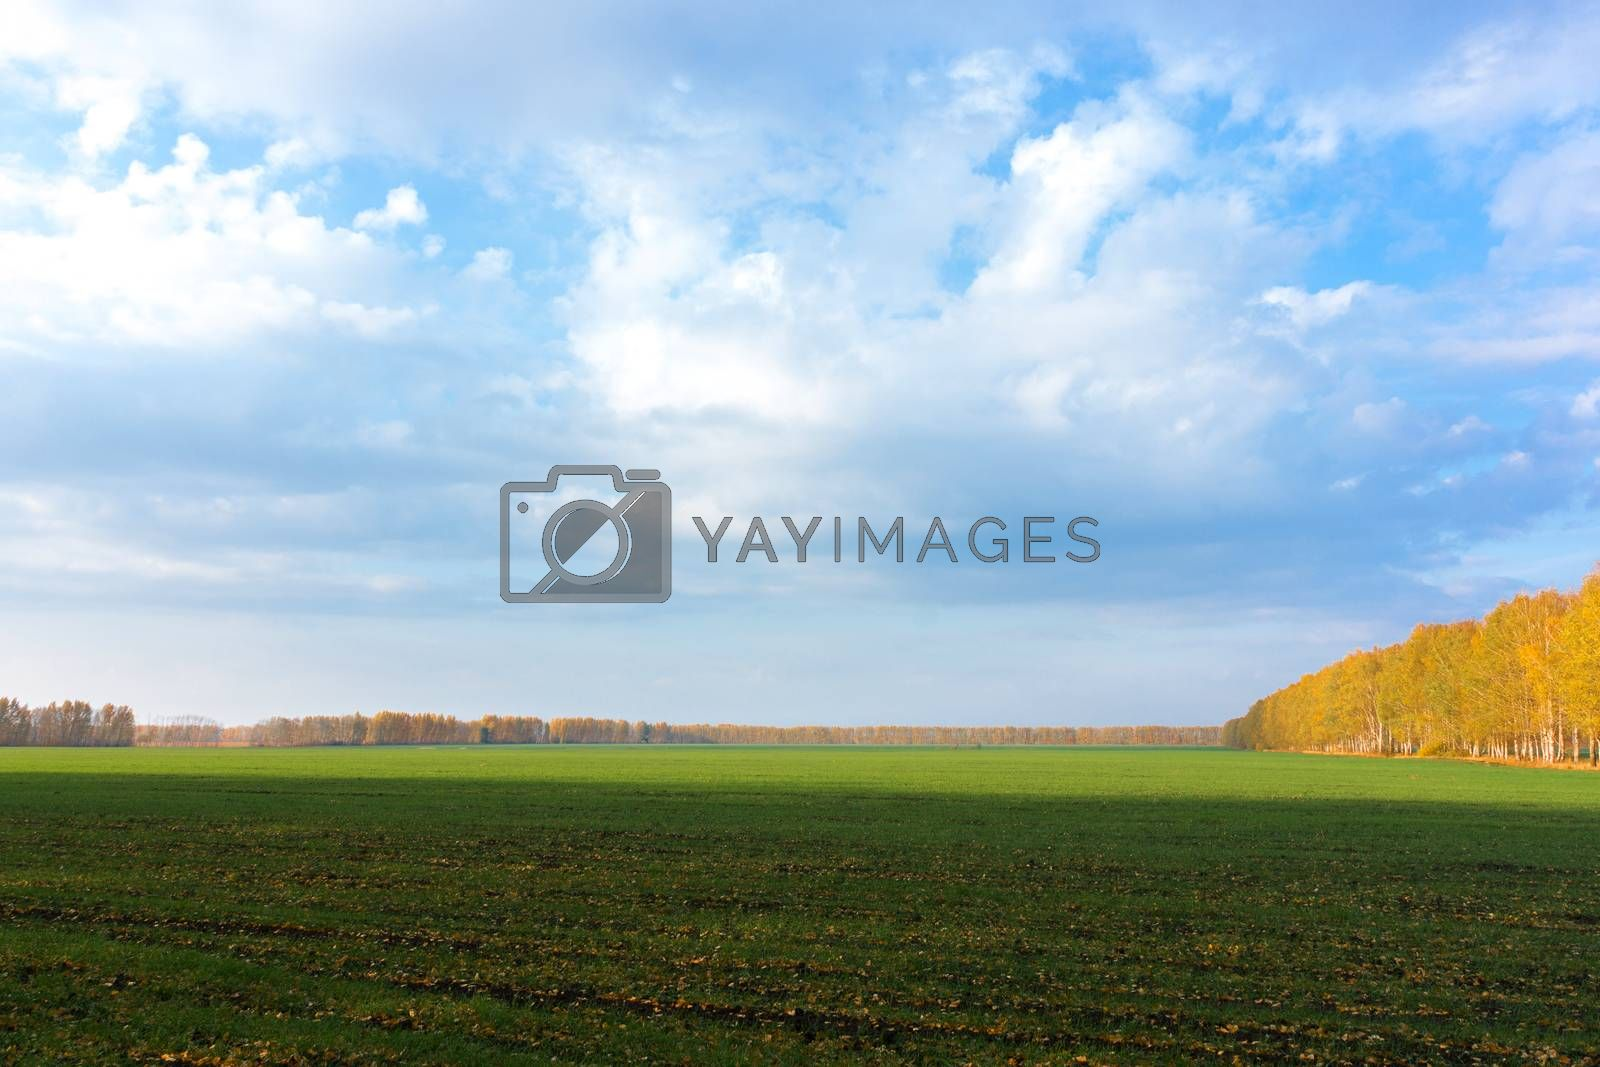 The photo shows the green grass in the field